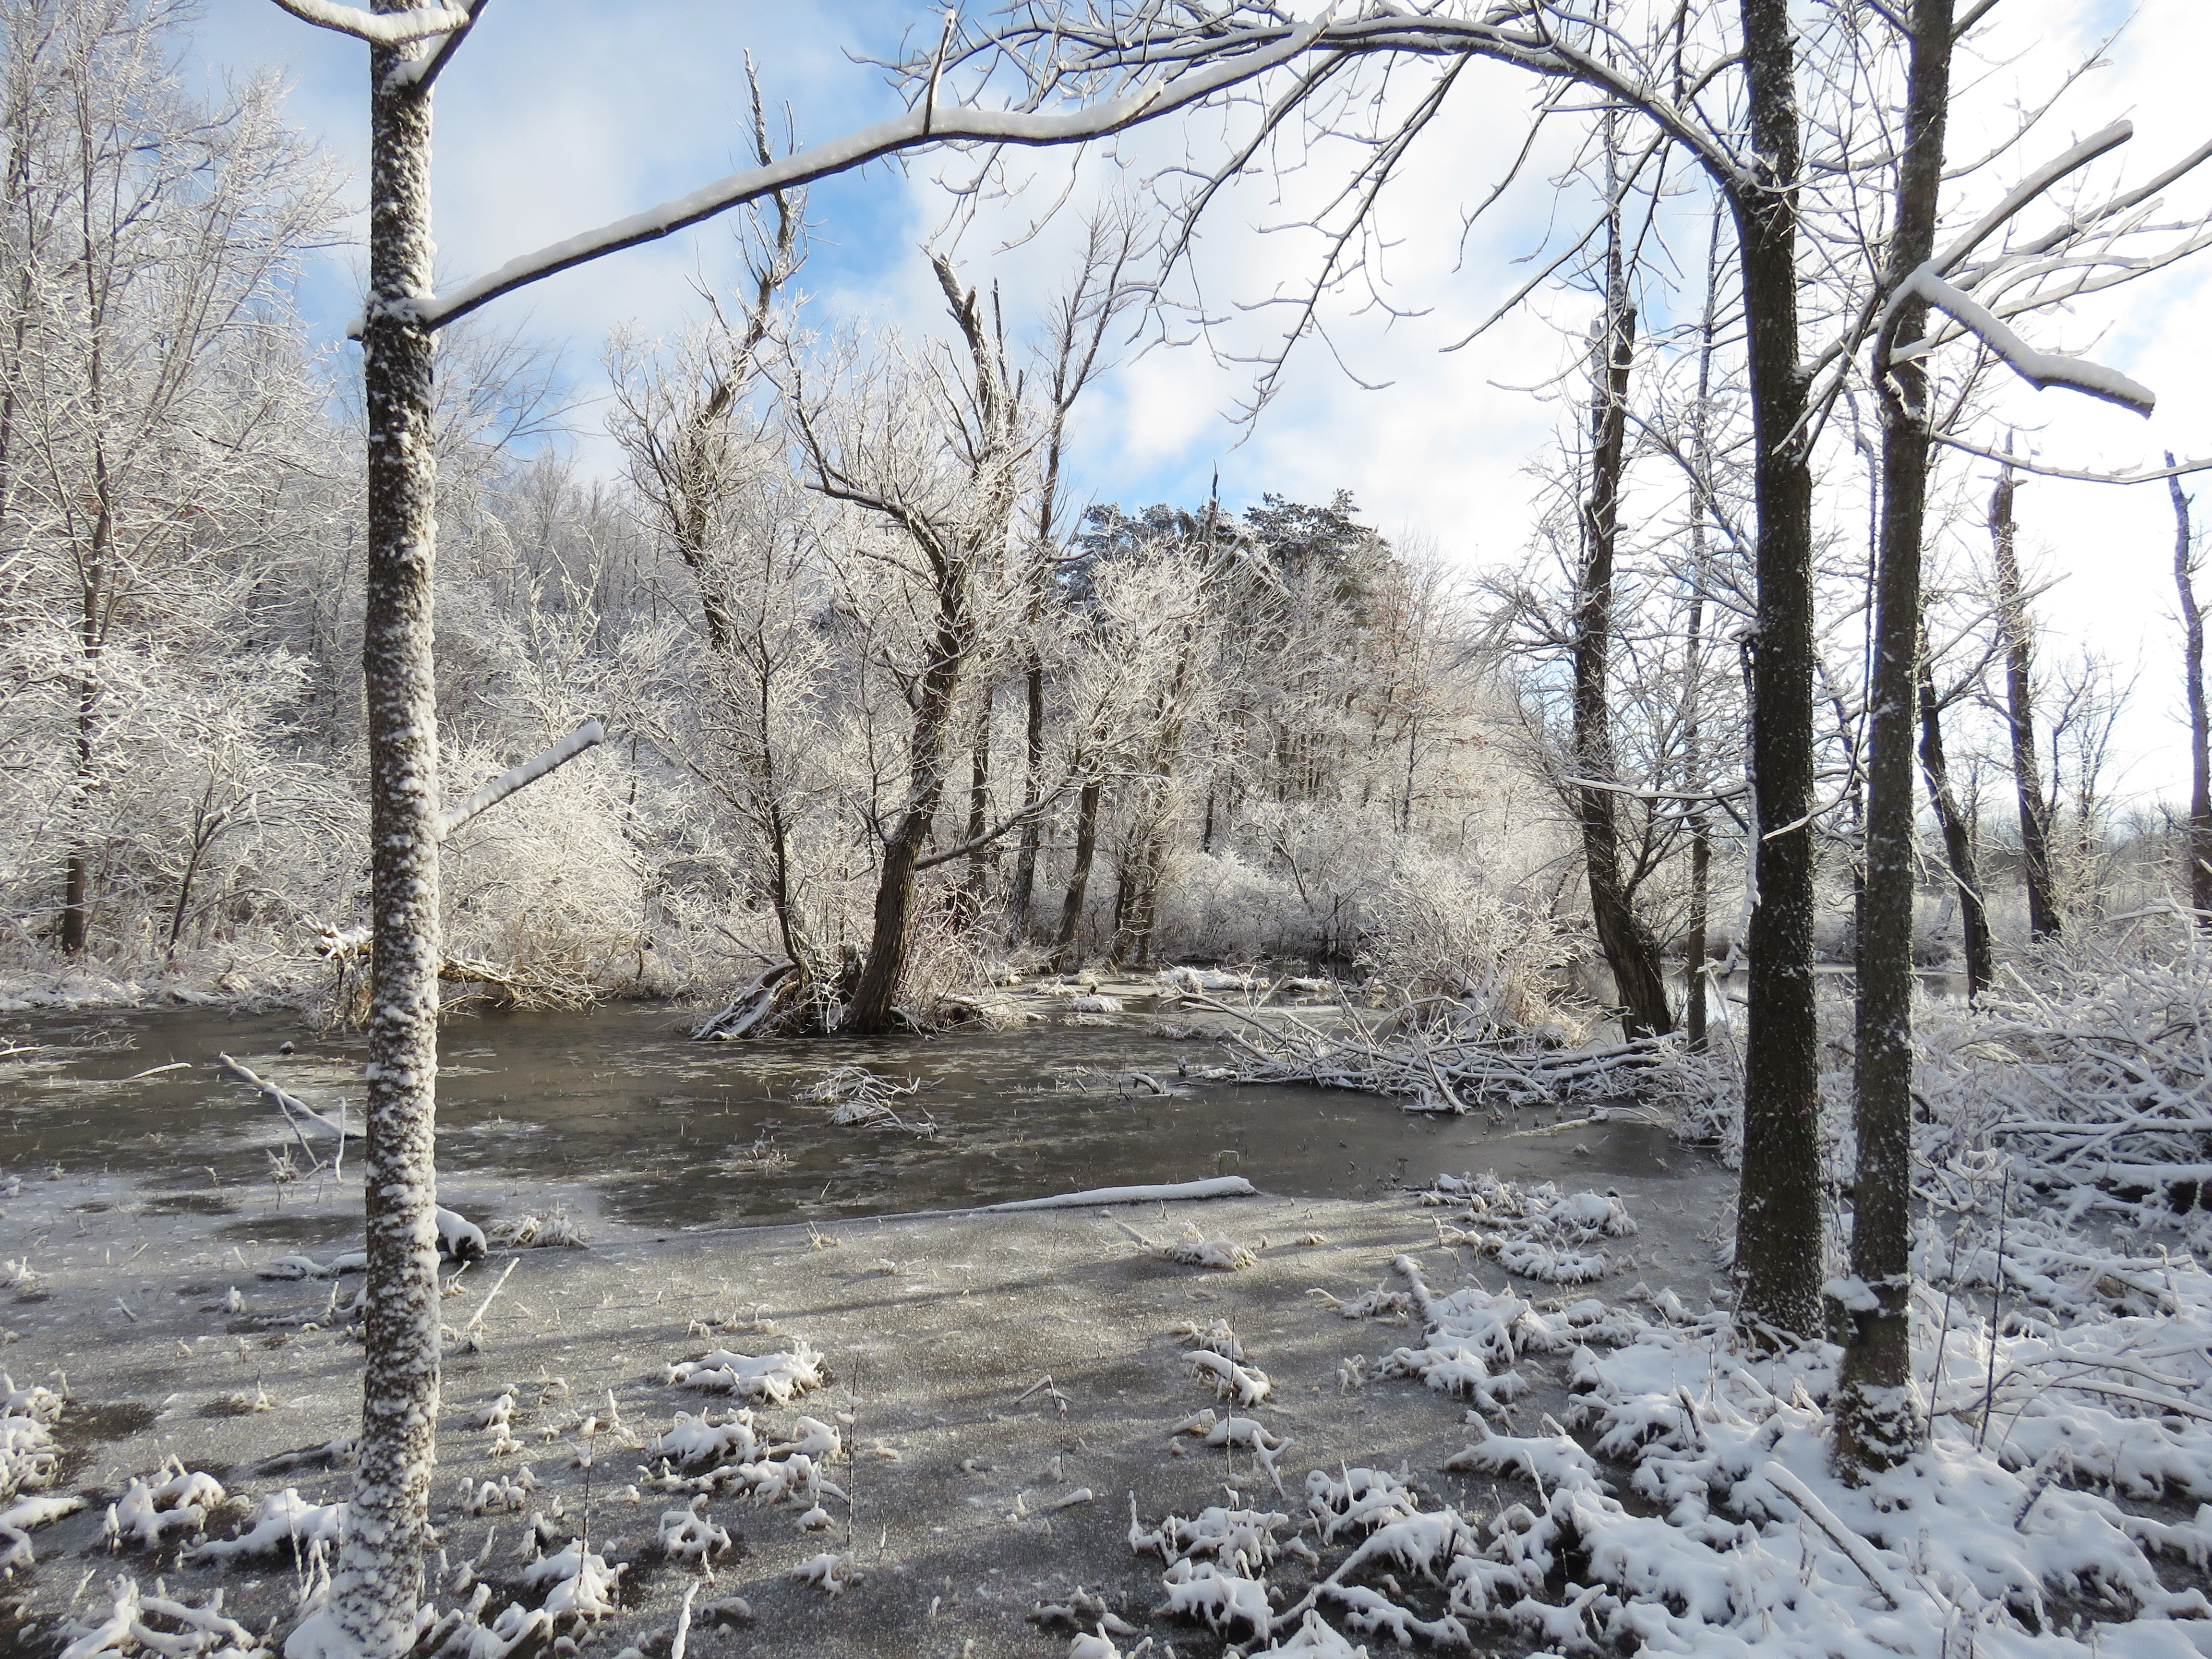 An icy swamp on a frosty morning